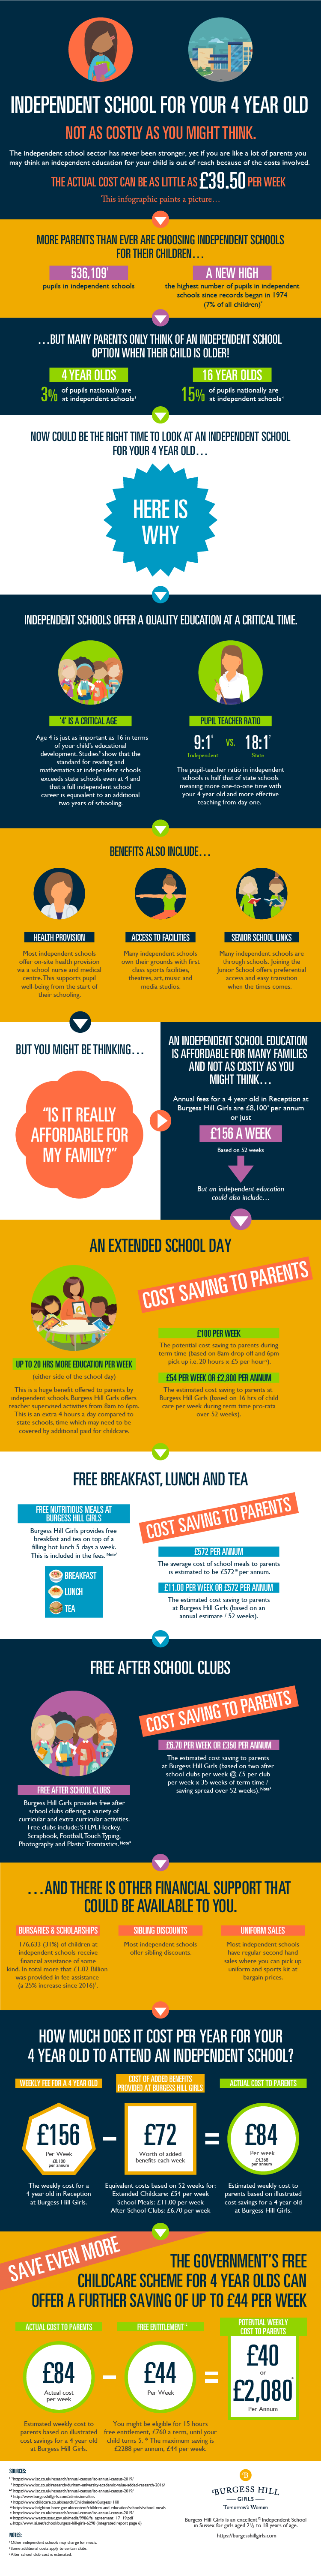 Independent School For Your Four Year Old - The Real Cost